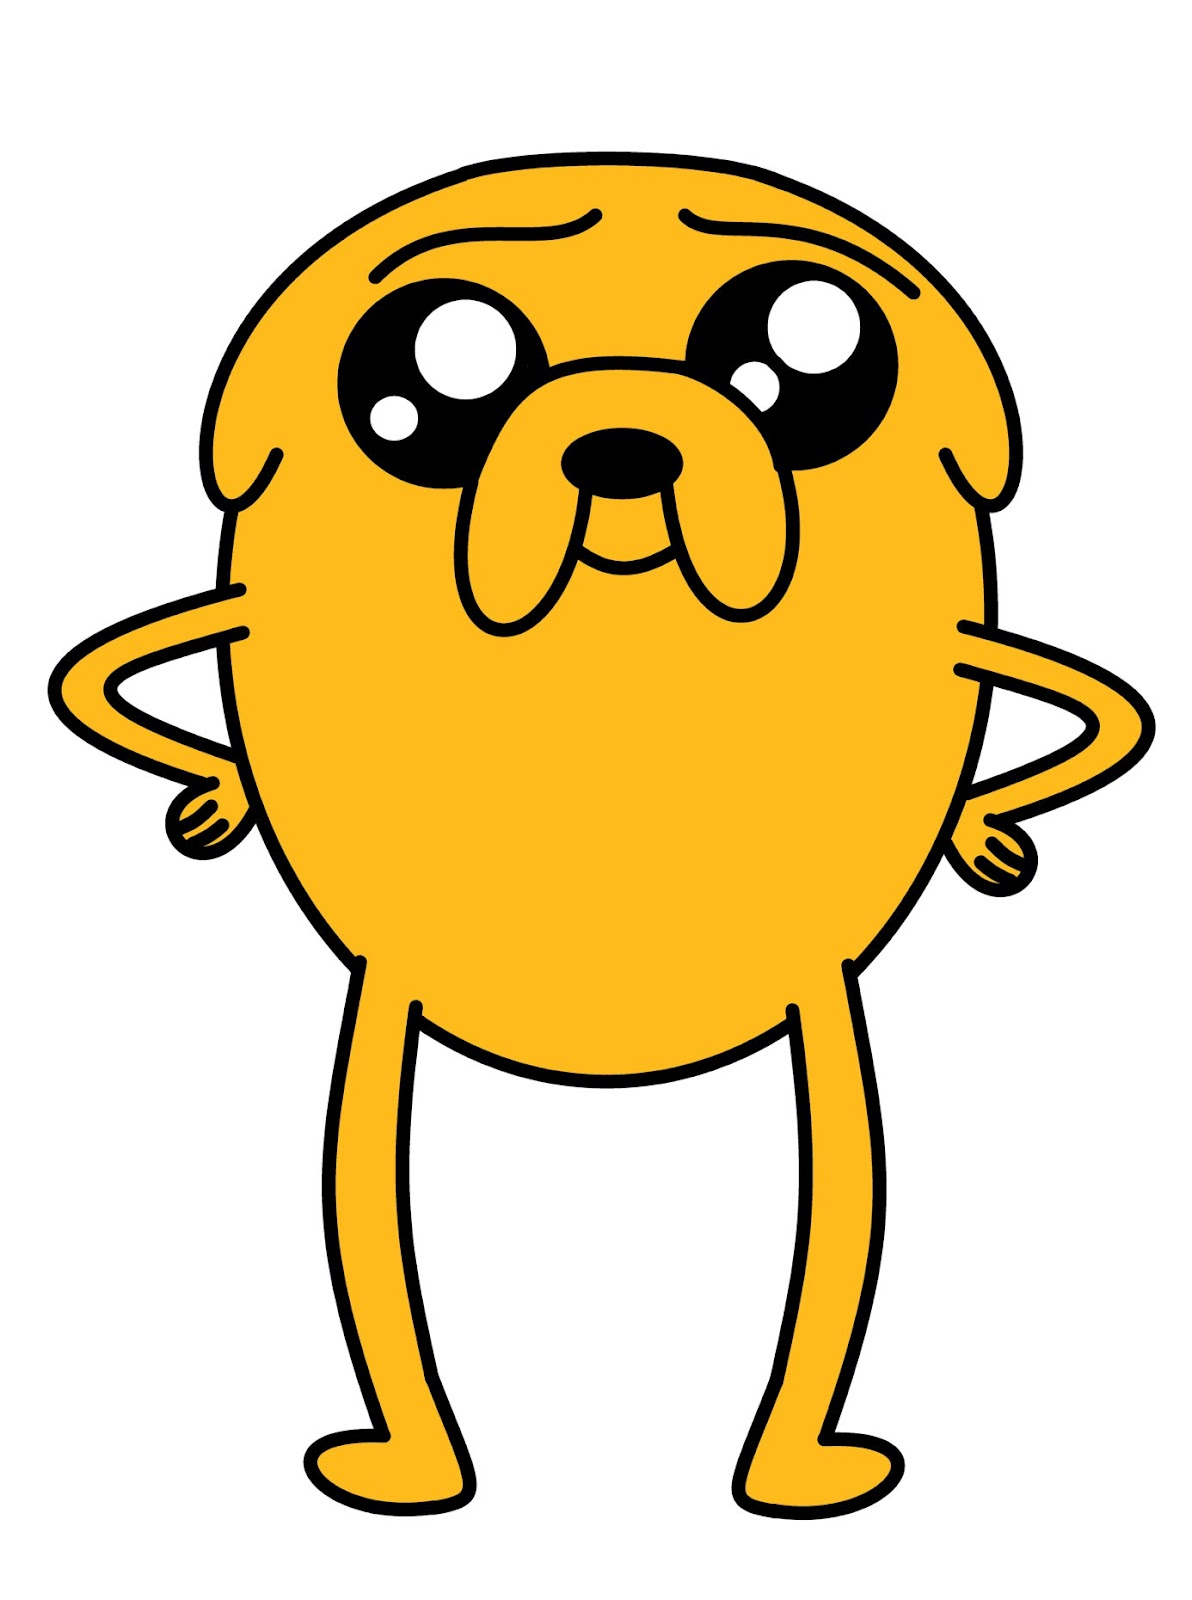 how to draw cartoons jake the dog clip art owls for teachers clip art owls for teachers